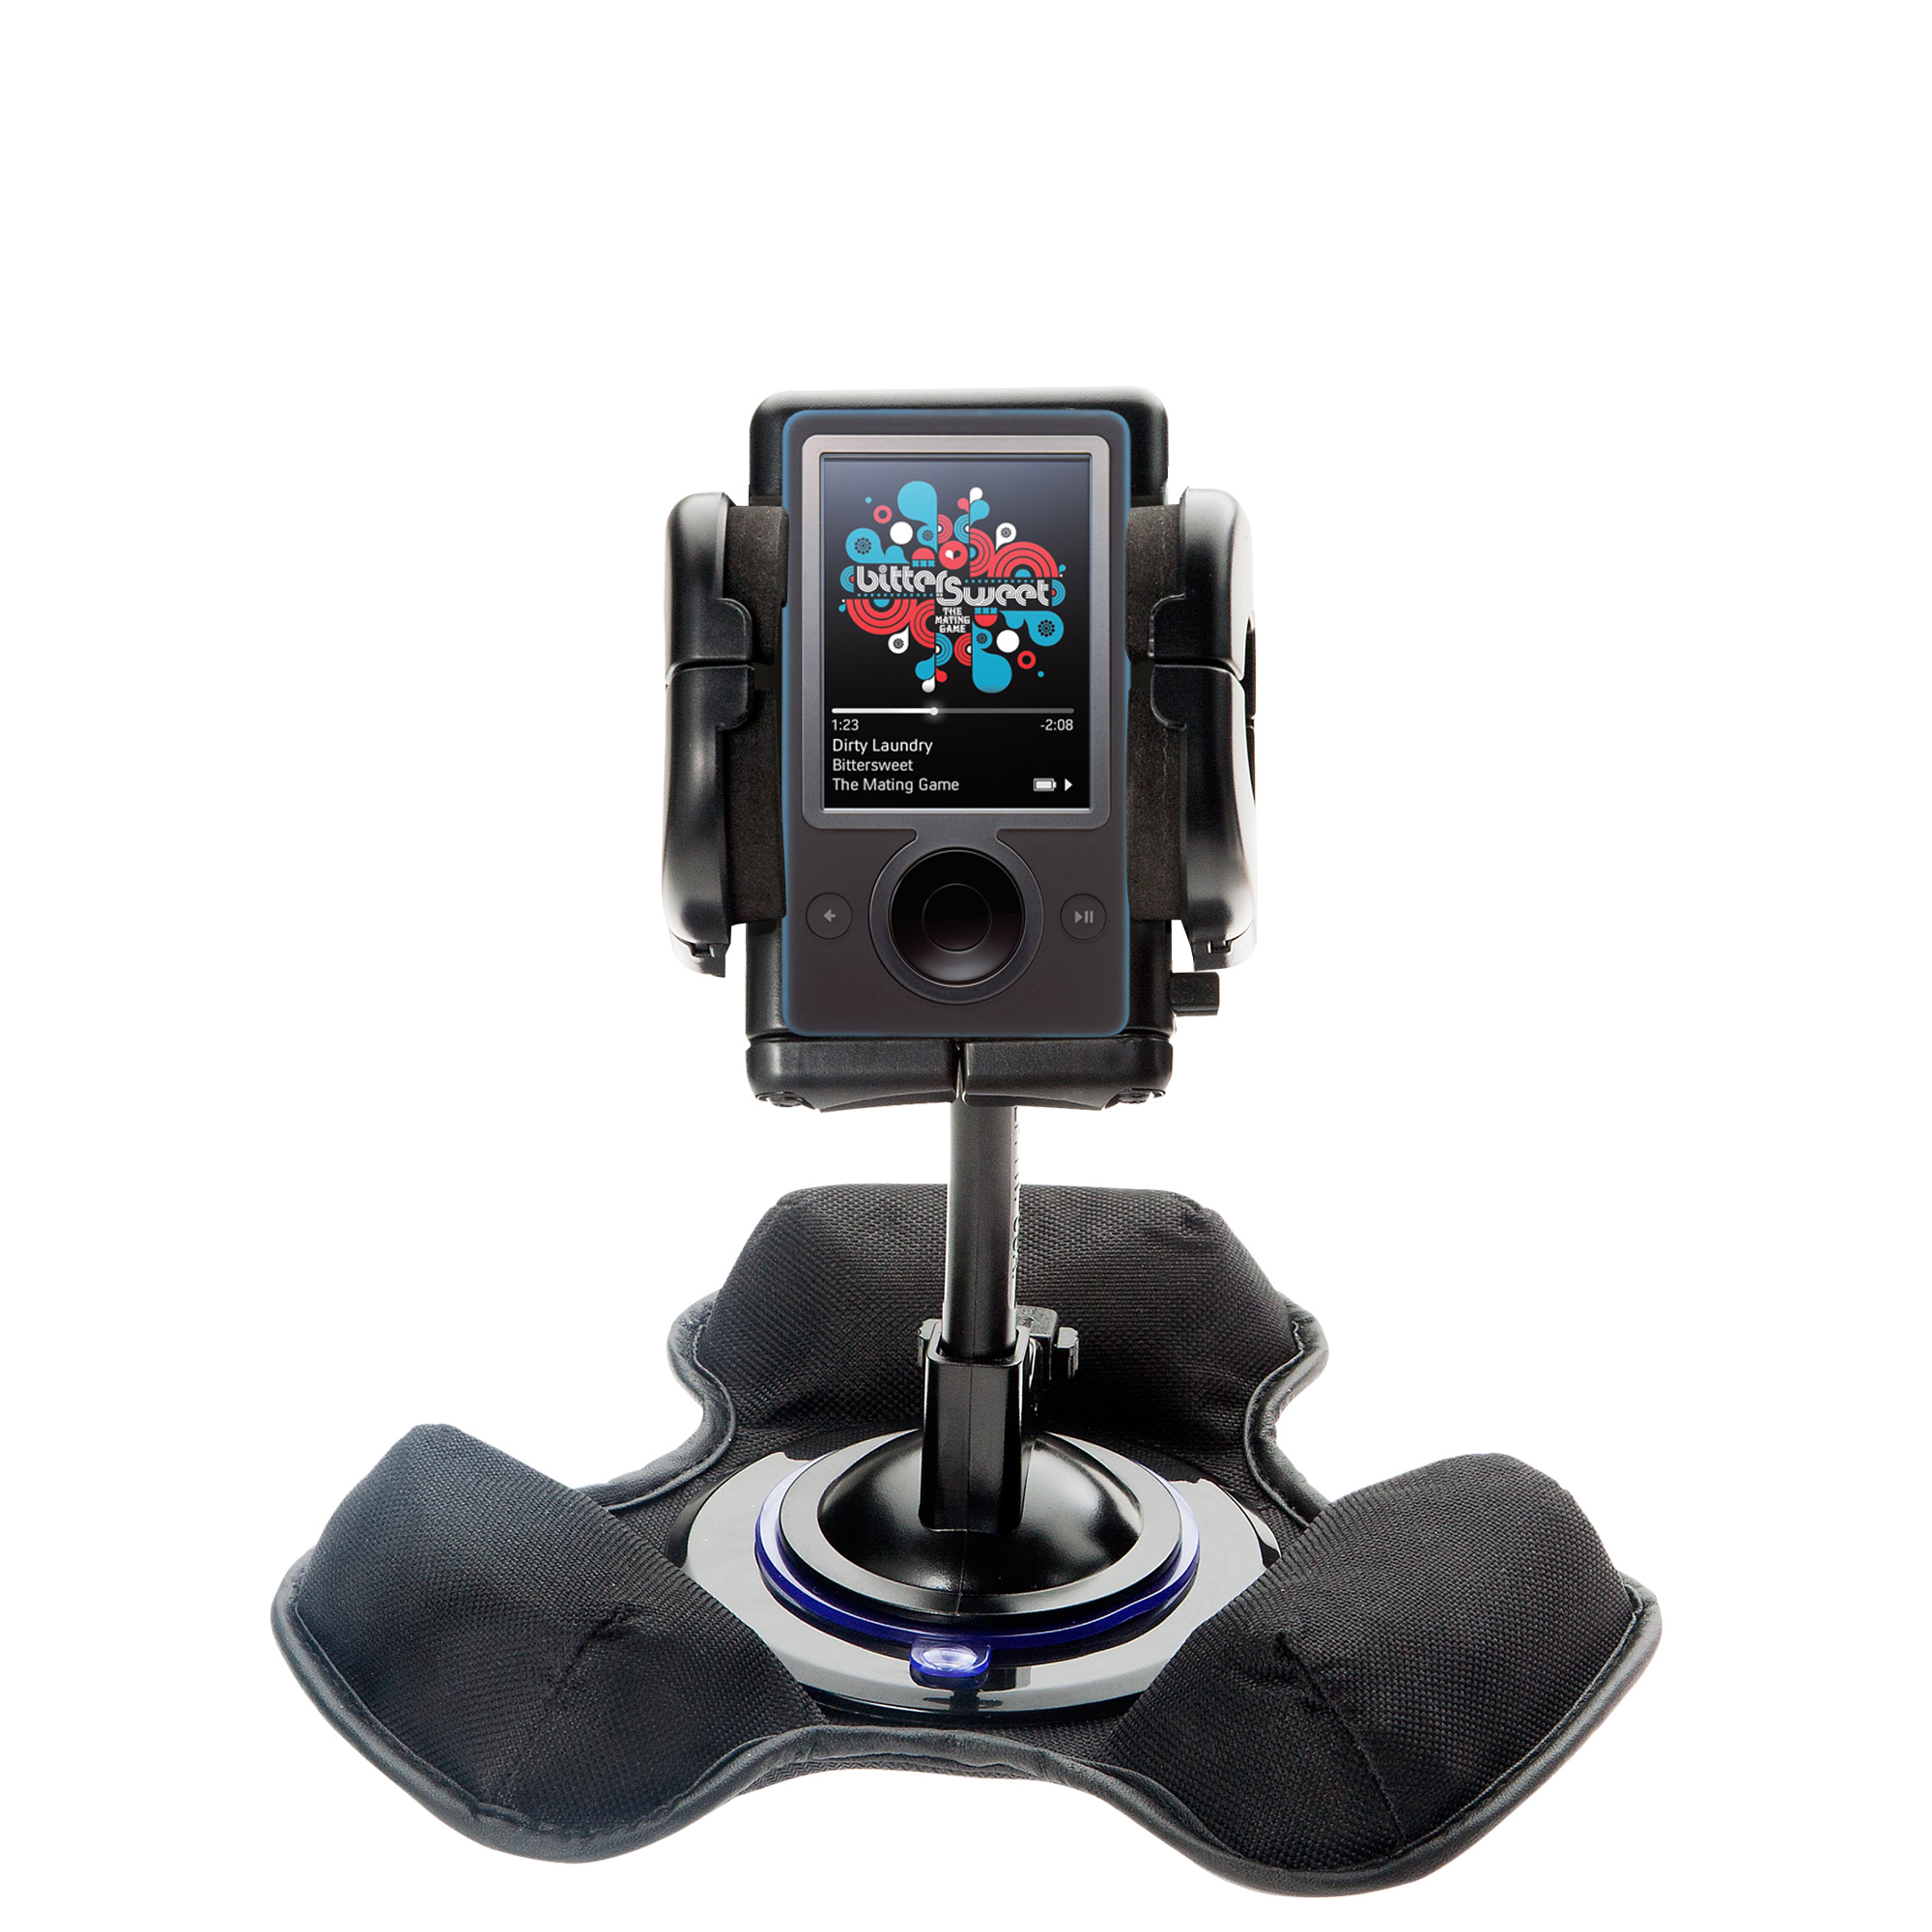 Dash and Windshield Holder compatible with the Microsoft Zune Gen2